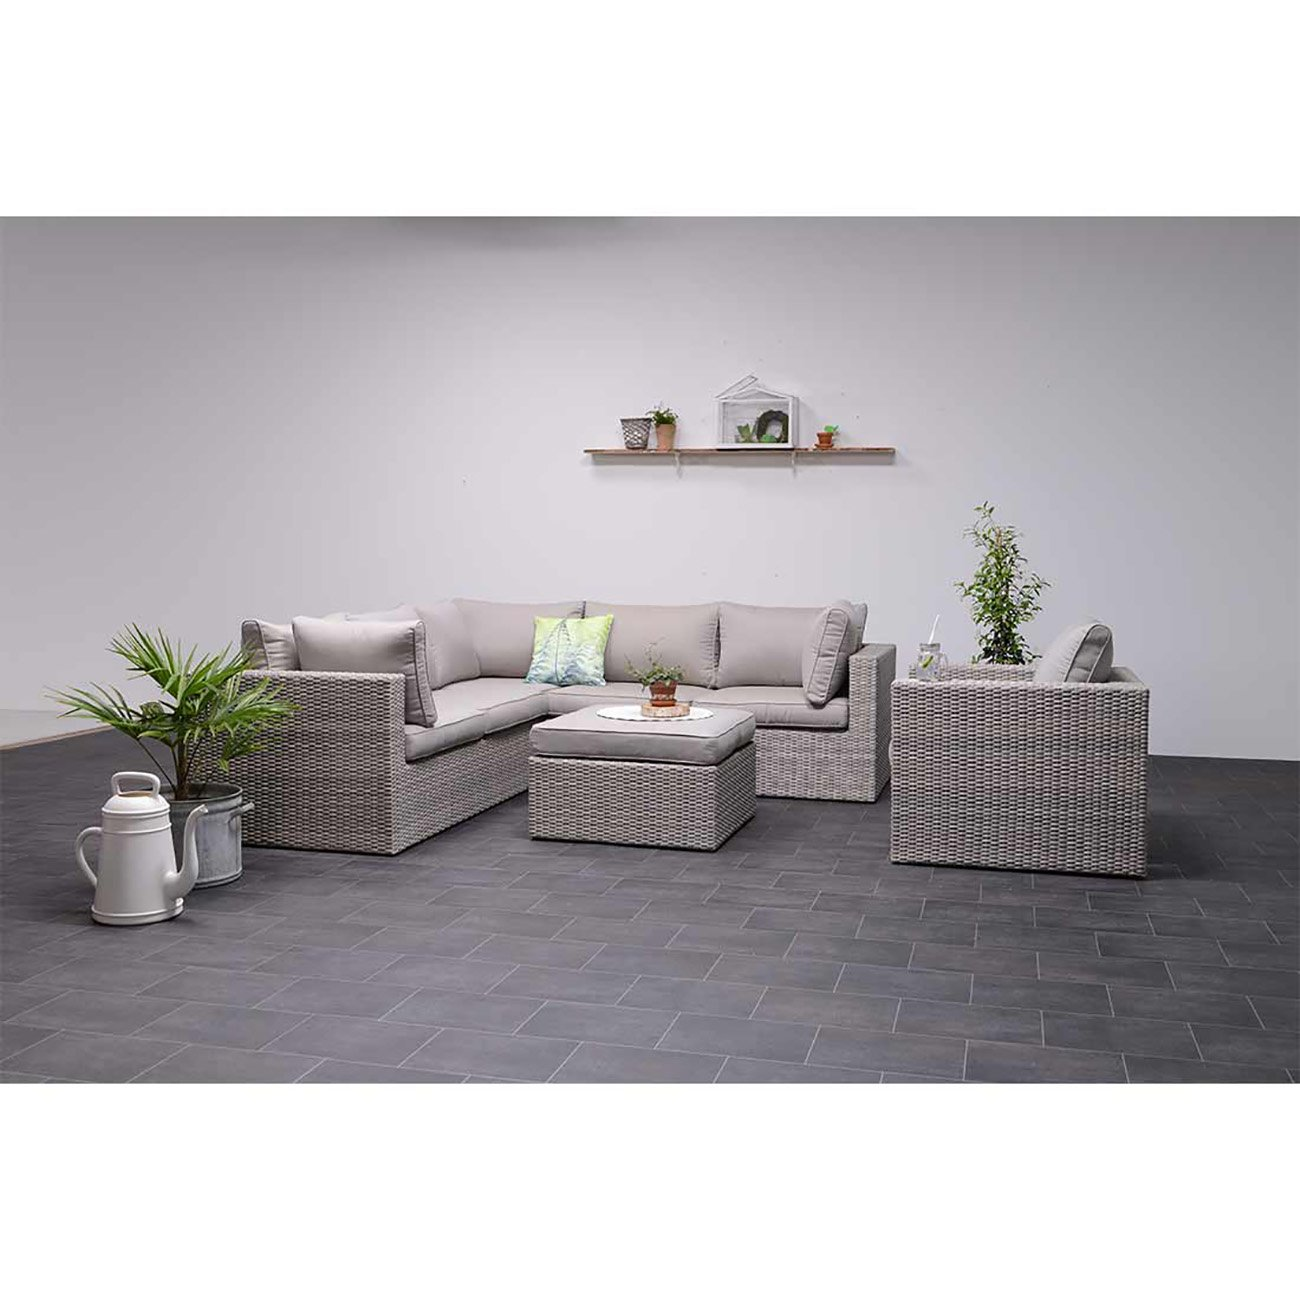 outliv orangebird lounge 5 teilig geflecht shadow grey kissen sand lounge set g nstig kaufen. Black Bedroom Furniture Sets. Home Design Ideas